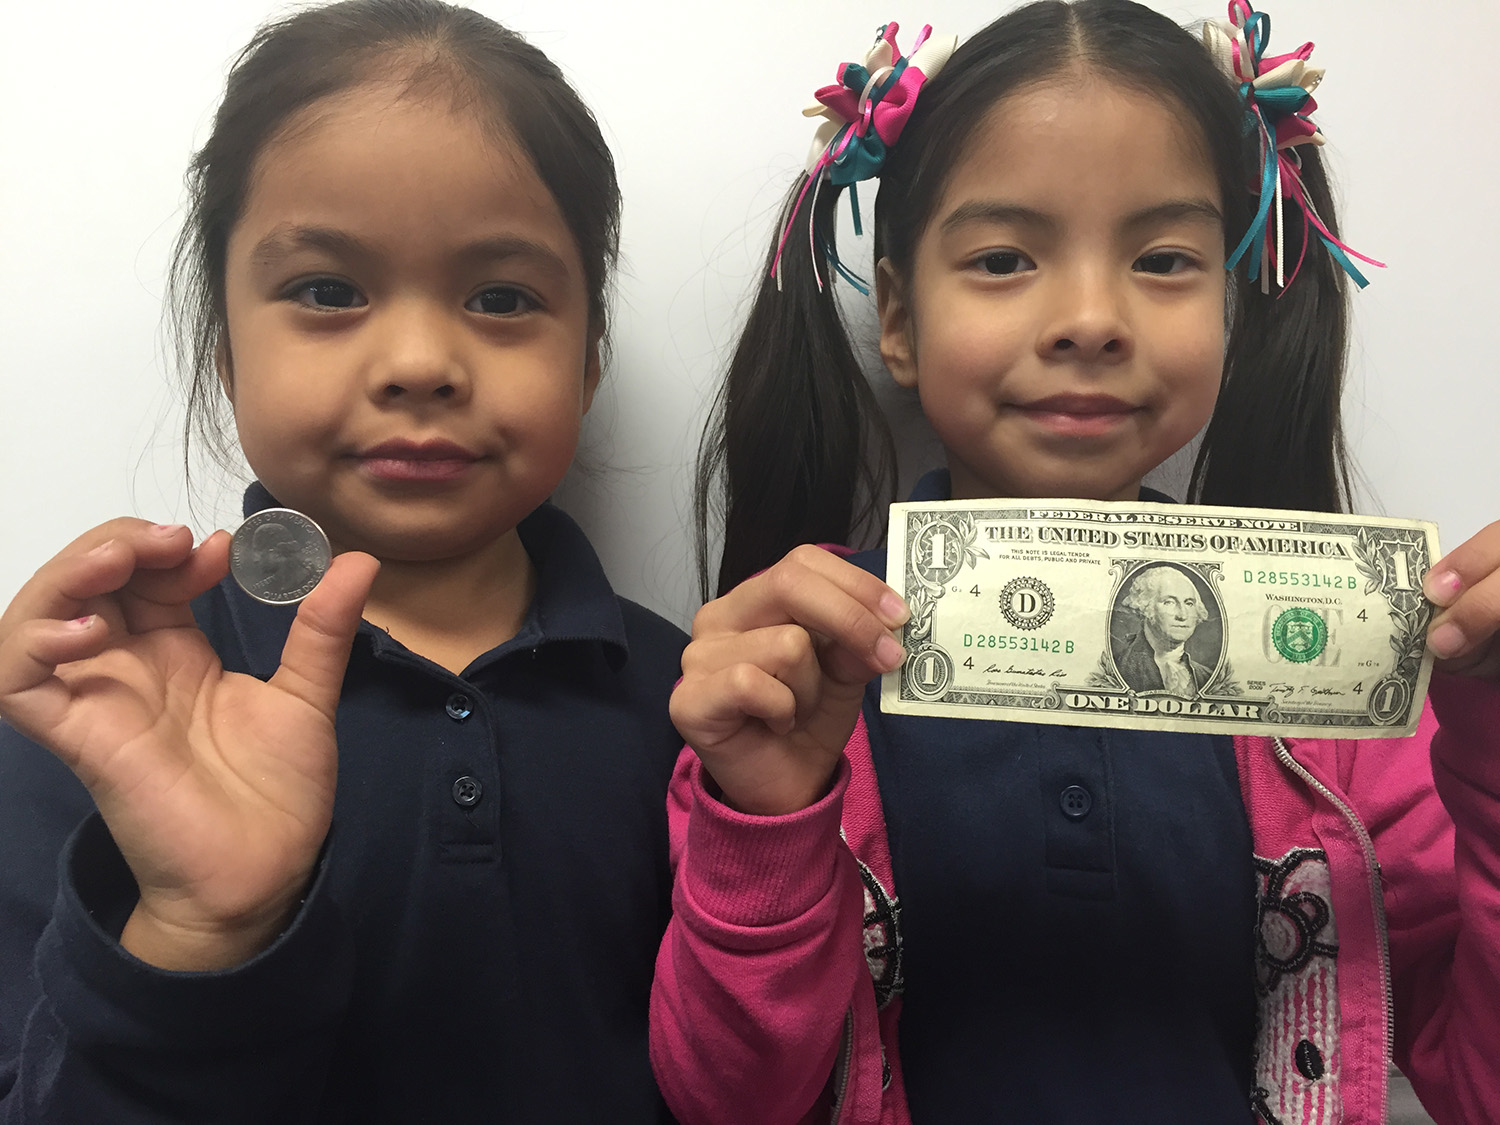 One child holding a quarter, and another holding a dollar bill